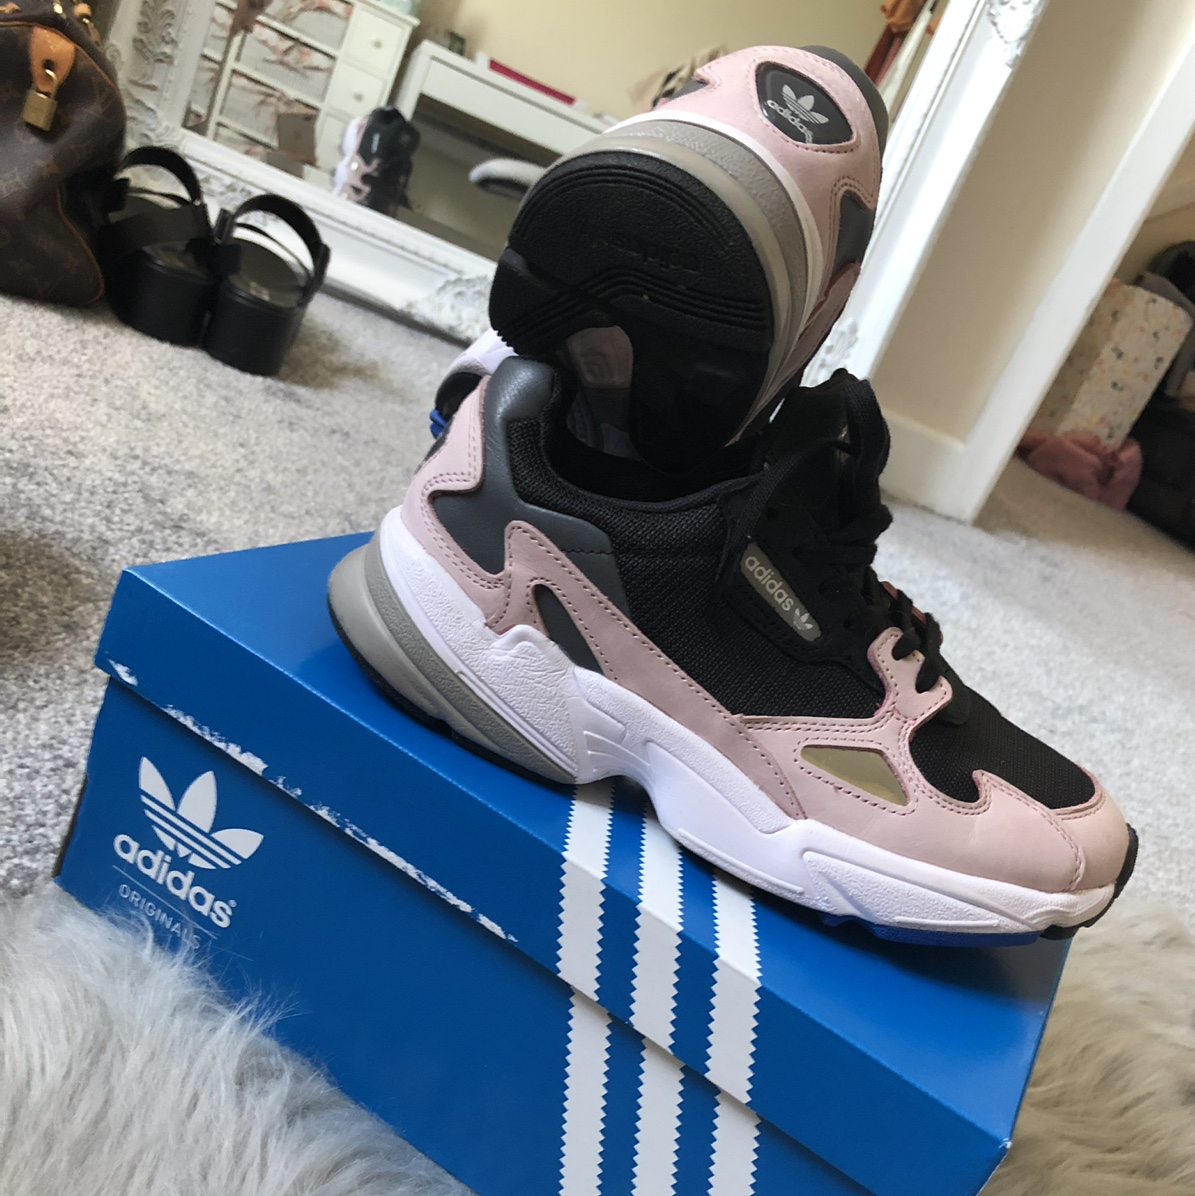 finest selection 451d5 f15c8 Kylie Jenner X Adidas Falcon Trainers Barely worn -... - Depop